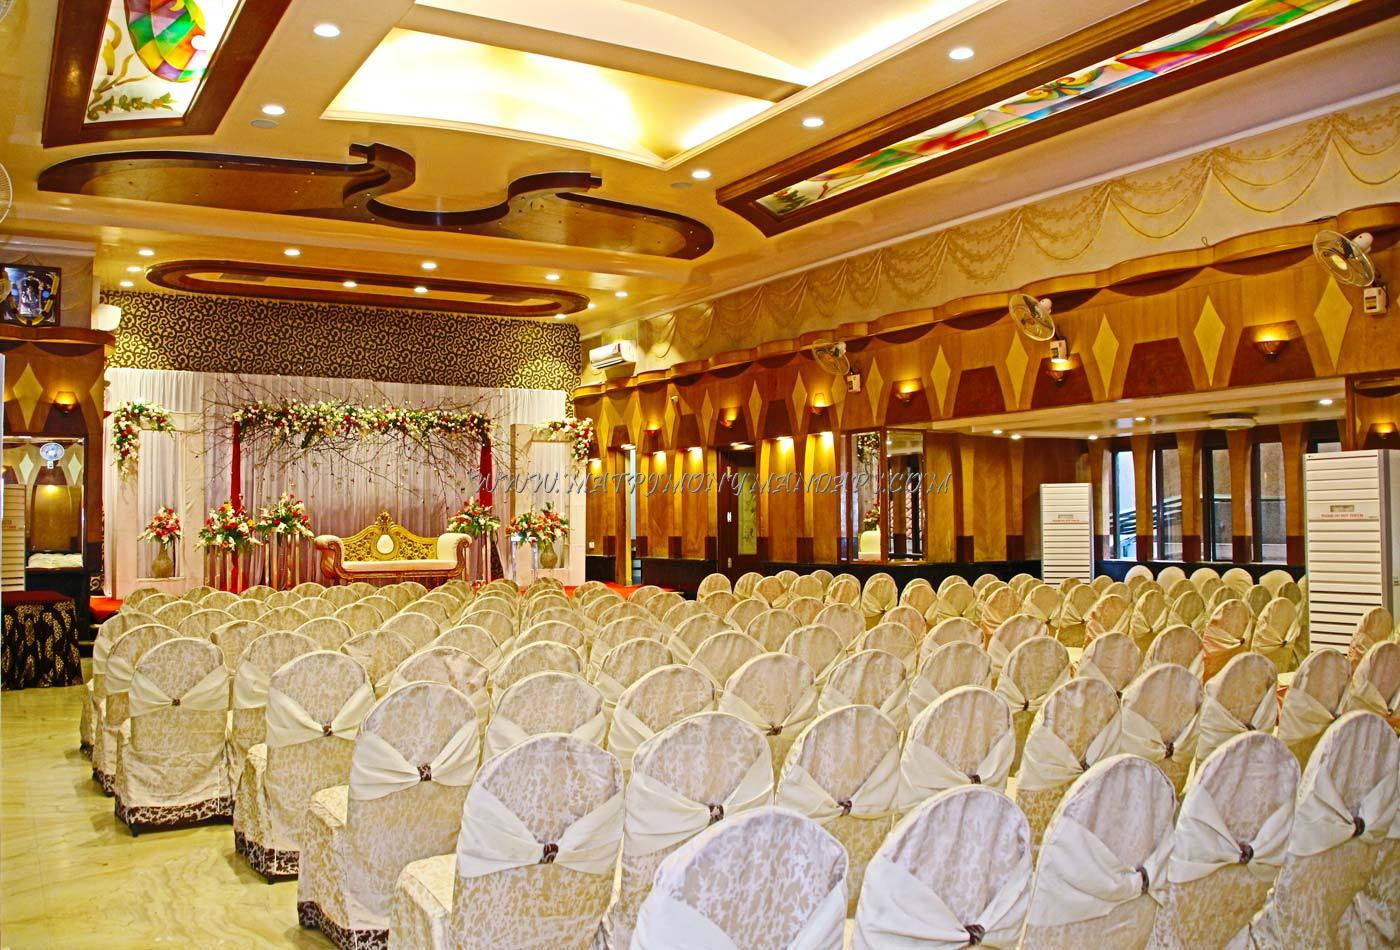 Find the availability of the Pai Viceroy - Sammilan (A/C) in Jayanagar, Bangalore and avail special offers